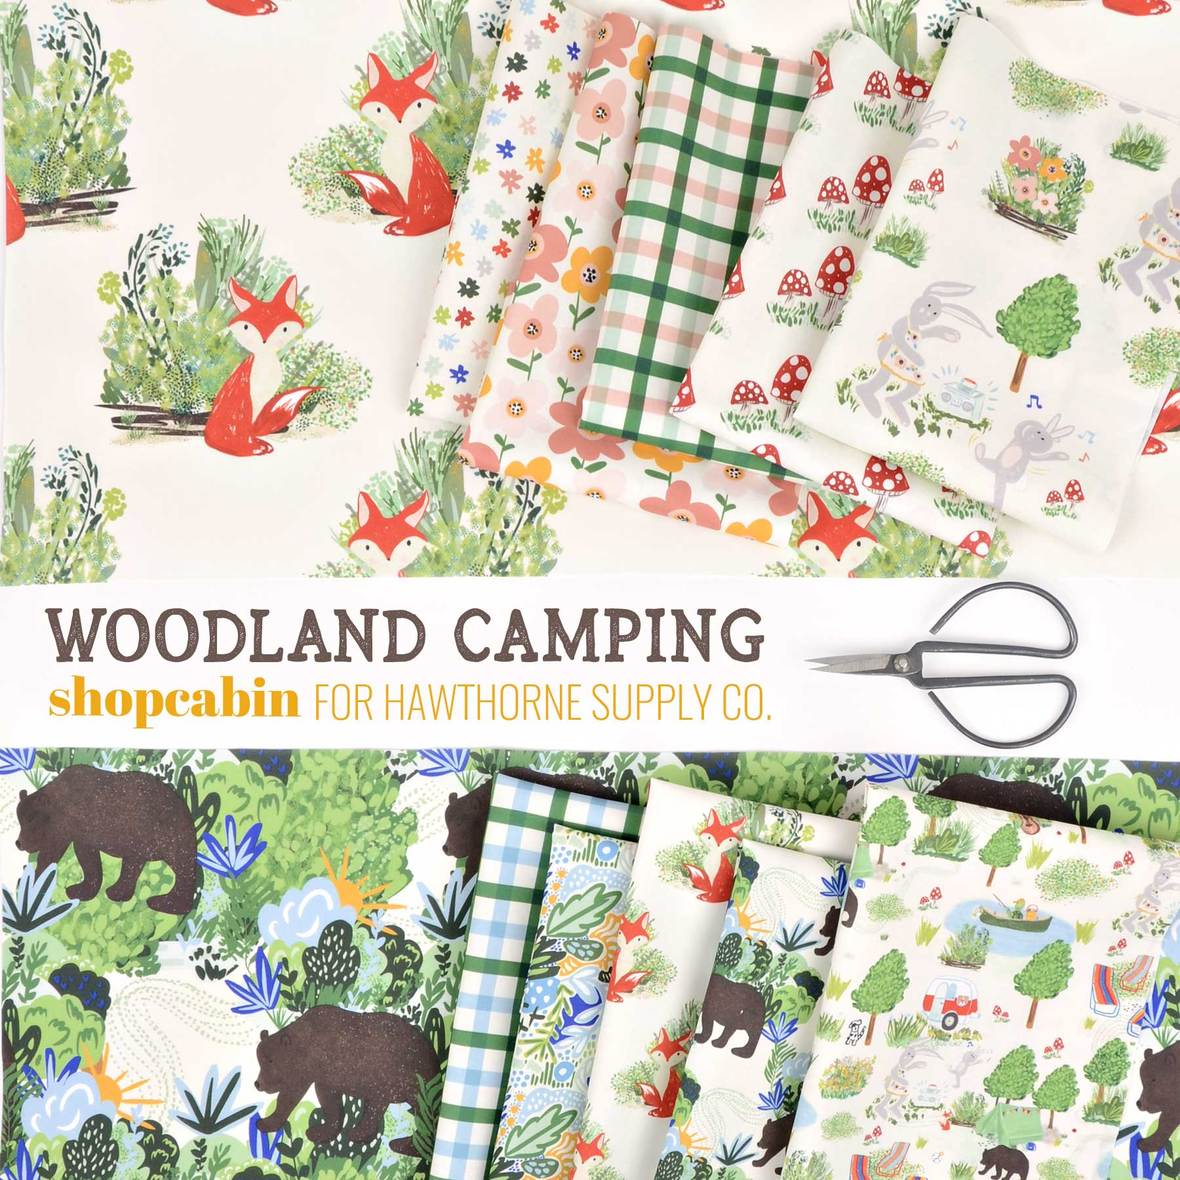 Woodland-Camping-Fabric-Shopcabin-for-Hawtorne-Supply-Co